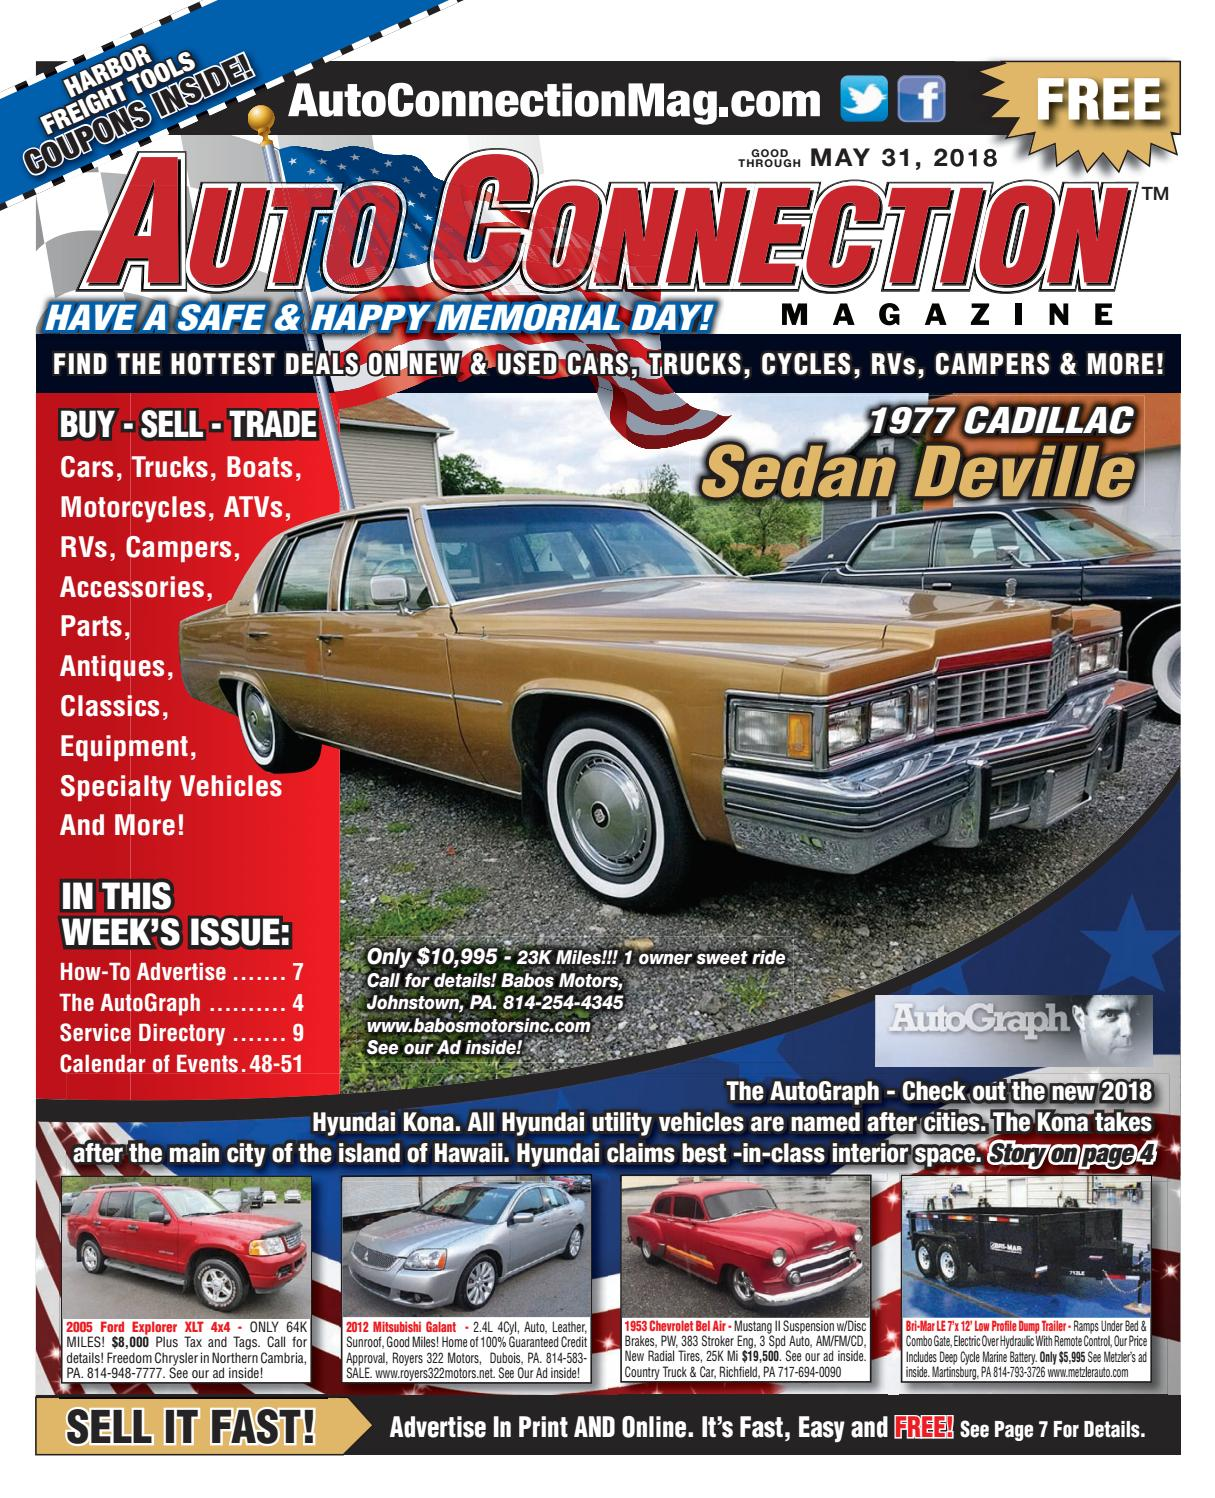 05 31 18 auto connection magazine by auto connection magazine issuu